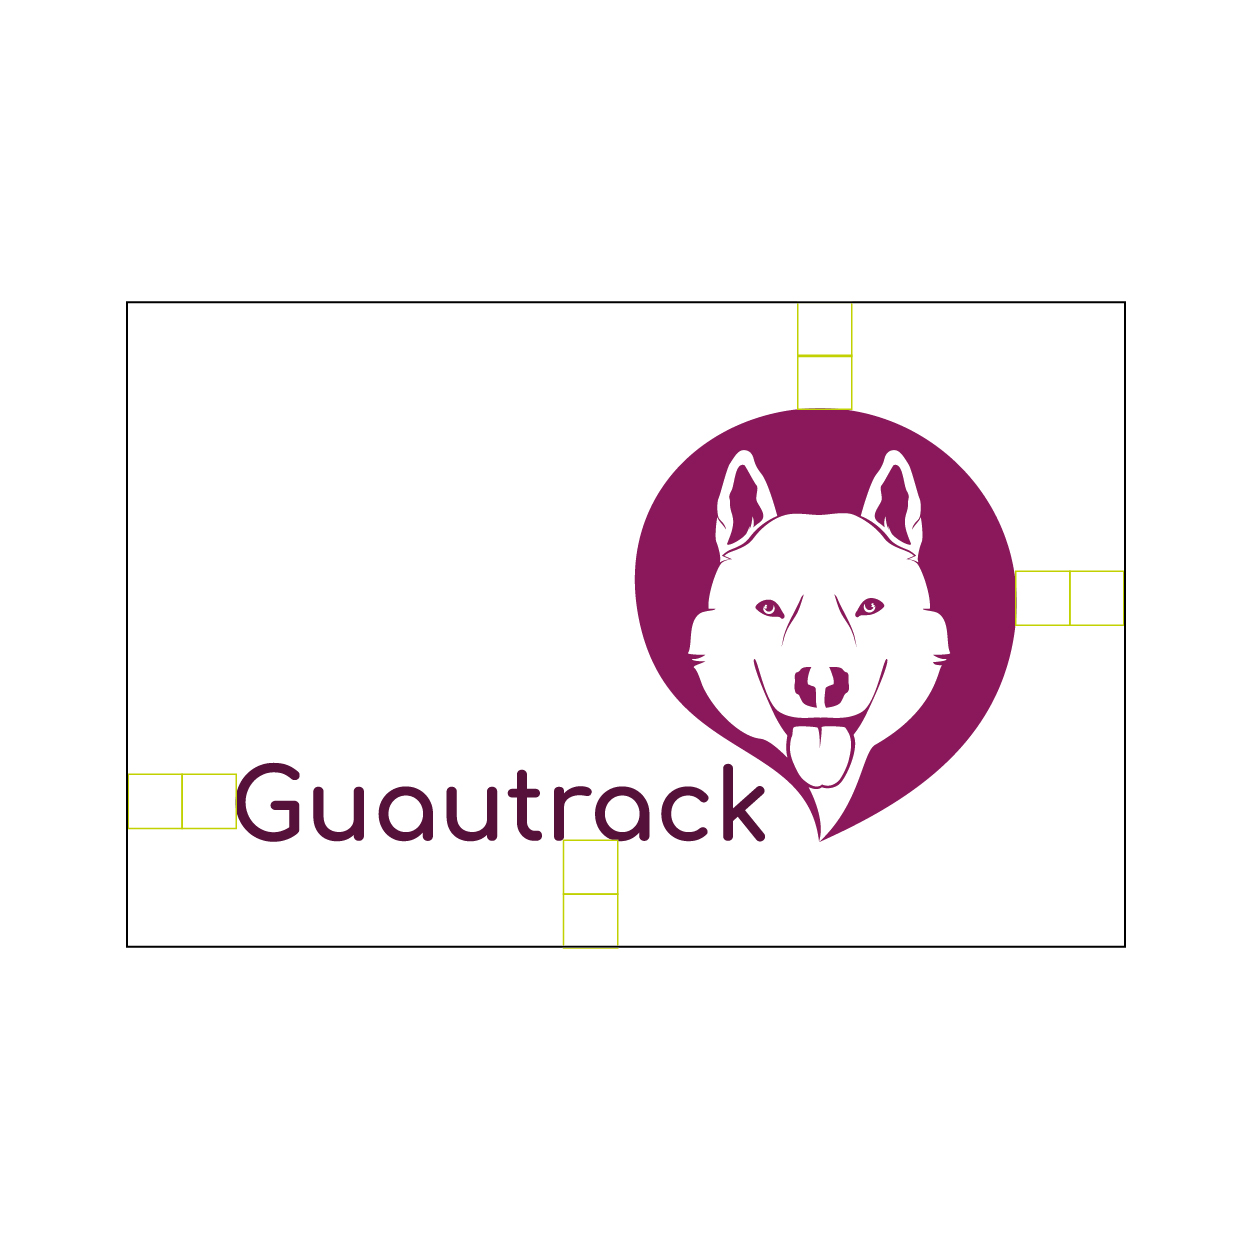 guautrack-29